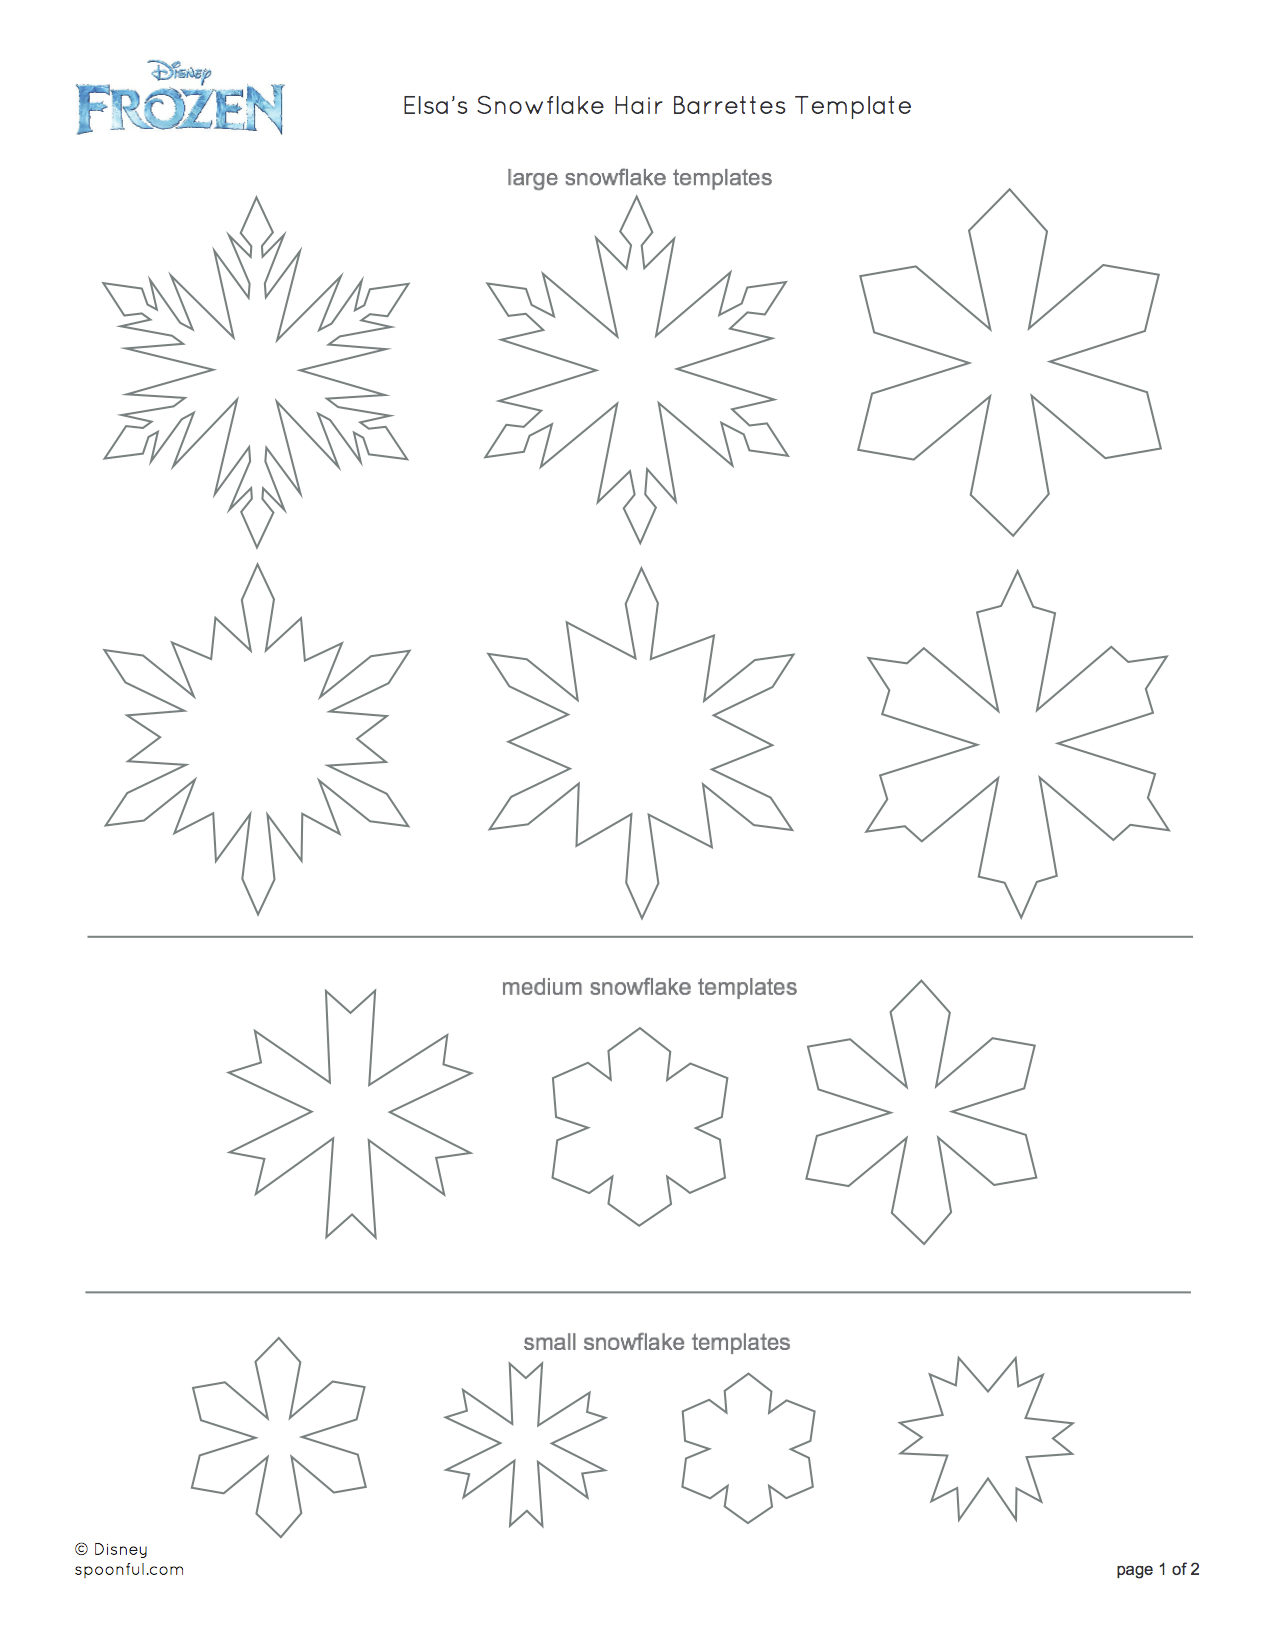 Snowflake drawing template at getdrawings free for personal 1275x1650 diy elsa snowflake barrettes cute and easy to make maxwellsz